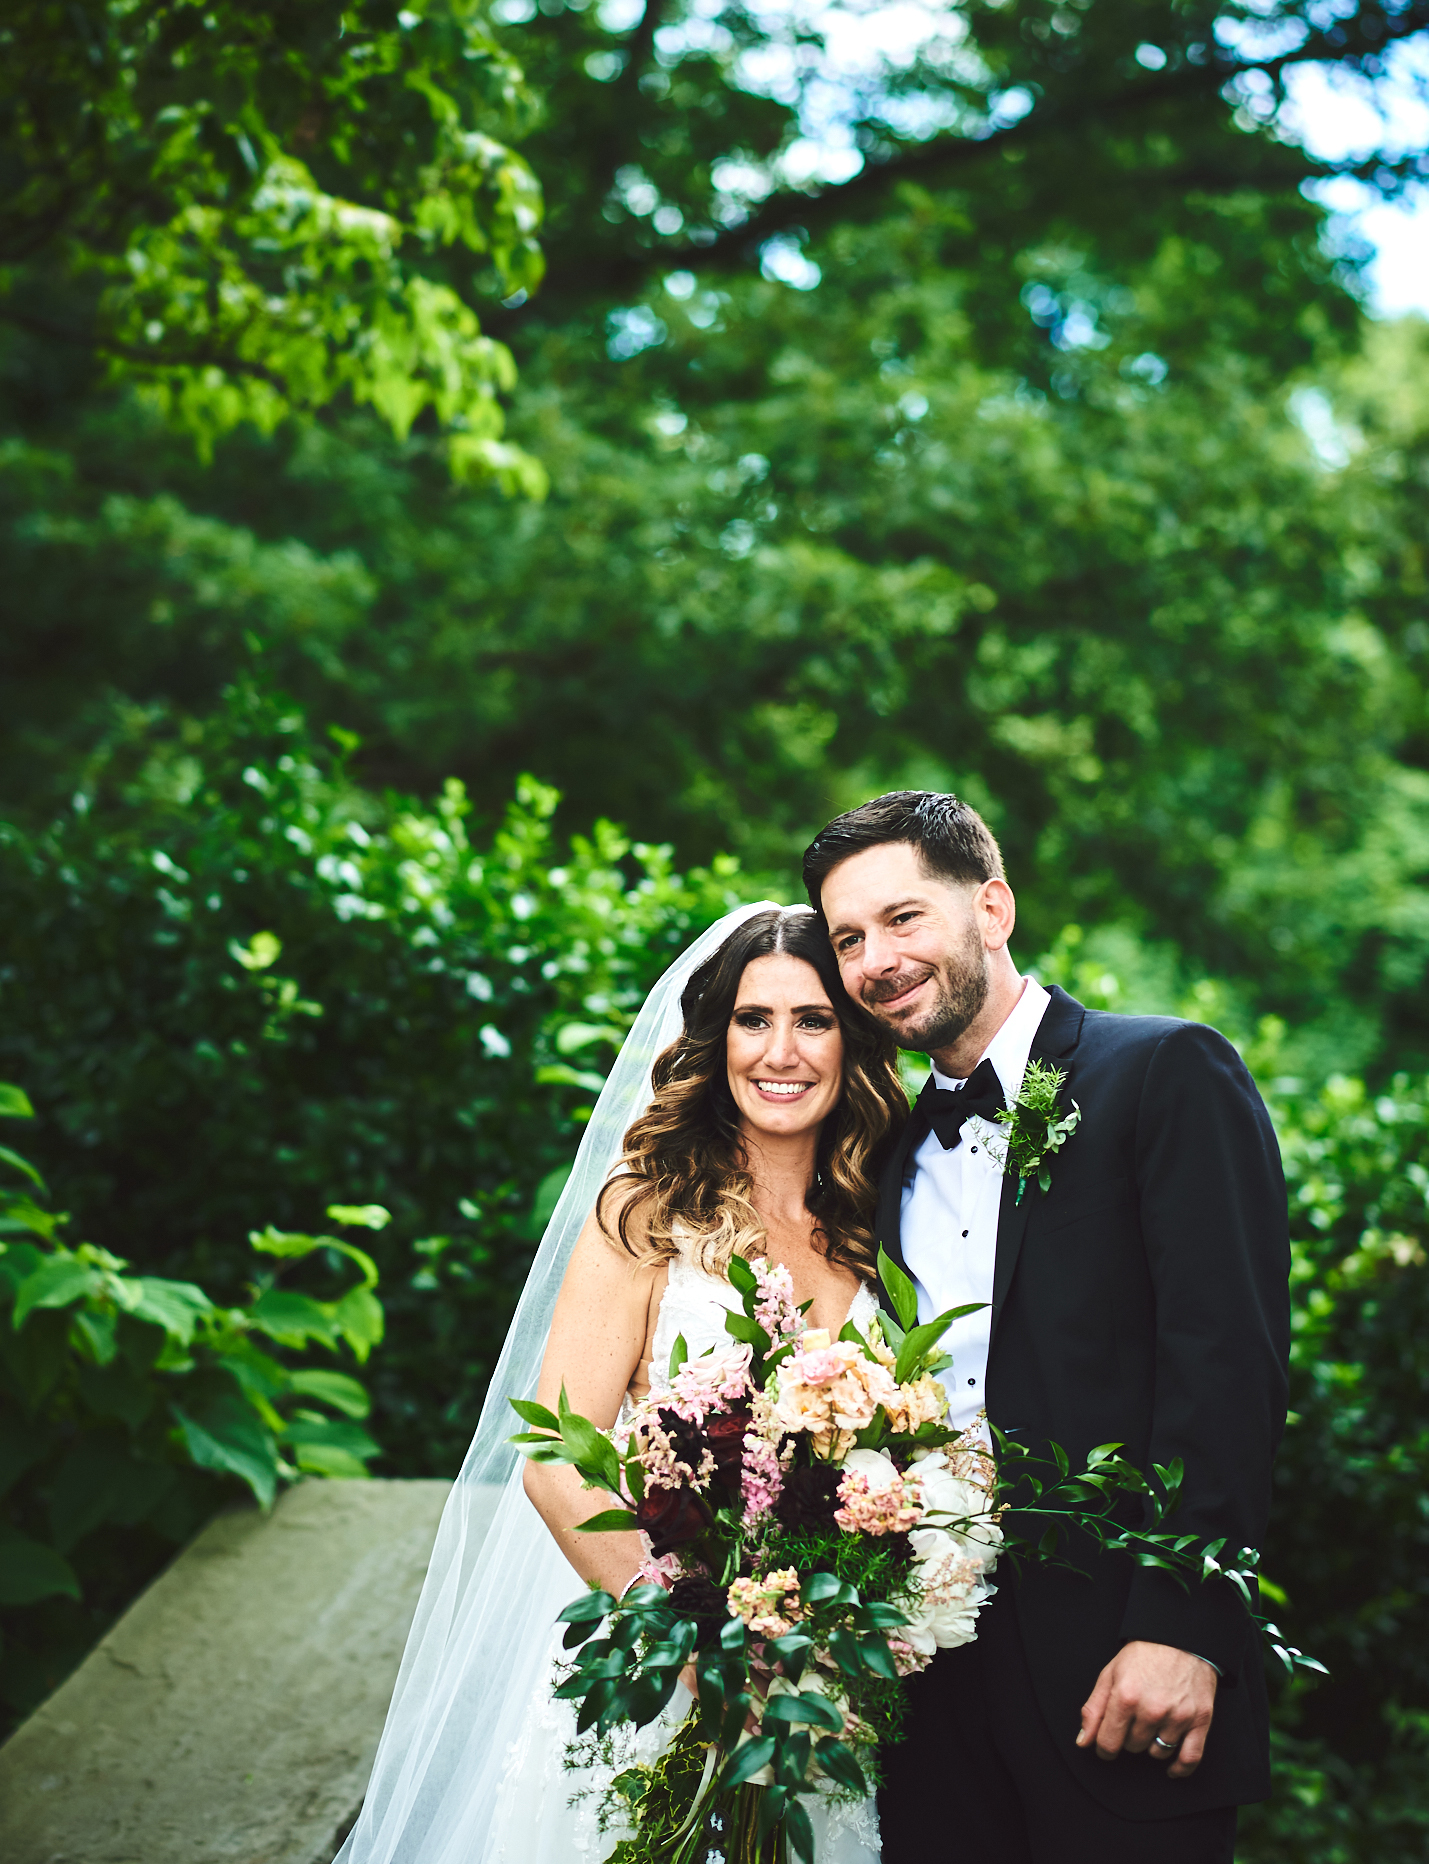 190628_SummerStatenIslandWeddingPhotography_By_BriJohnsonWeddings_0104.jpg